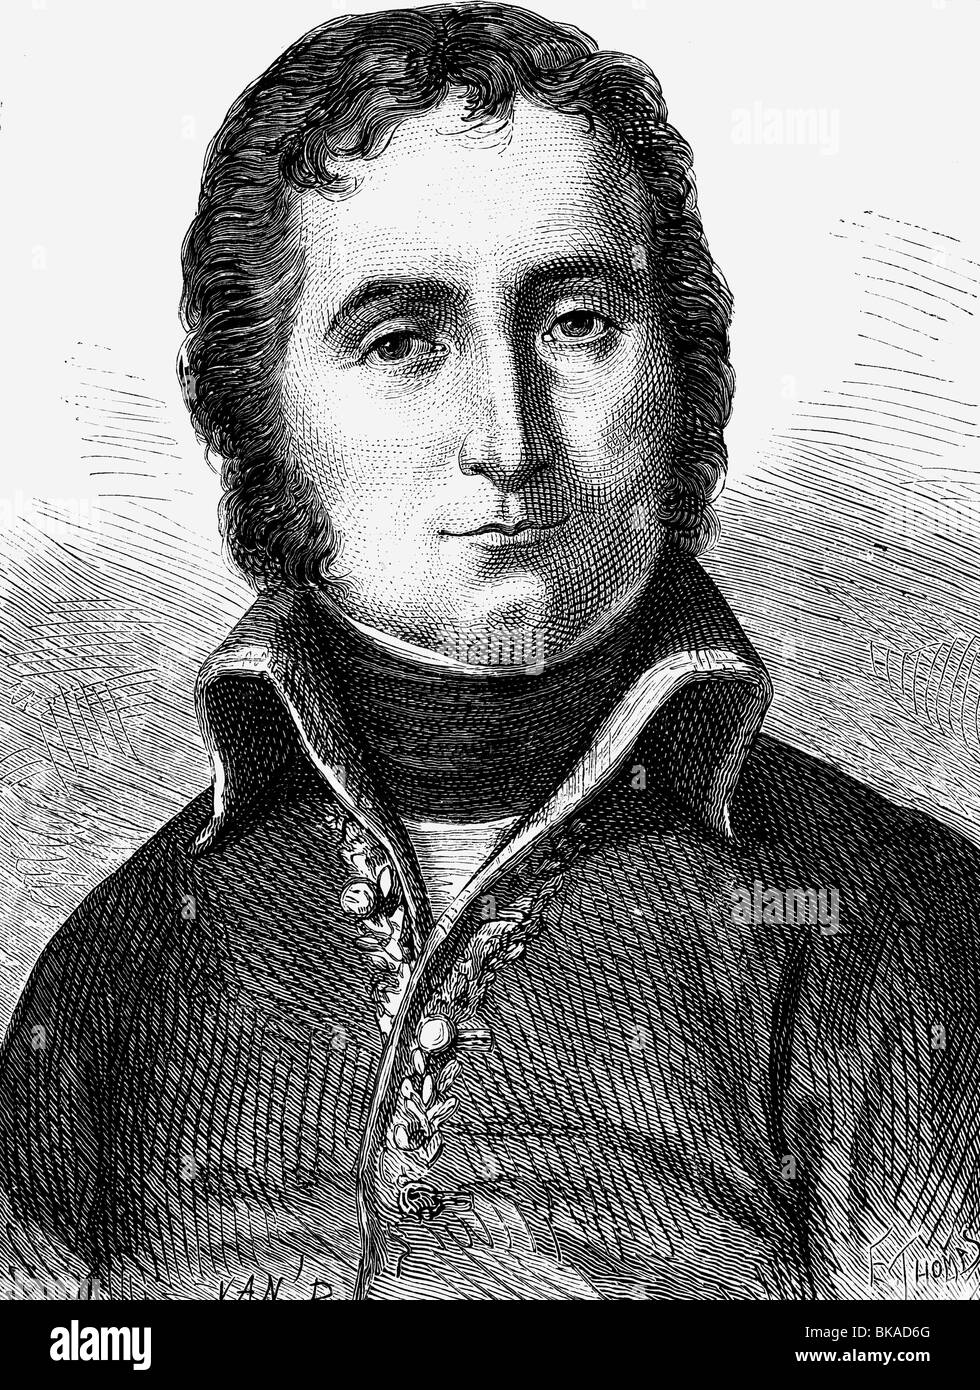 Masséna, André, 6.5.1756 - 14.4.1817, French general, portrait, wood engraving, 19th century, , Stock Photo